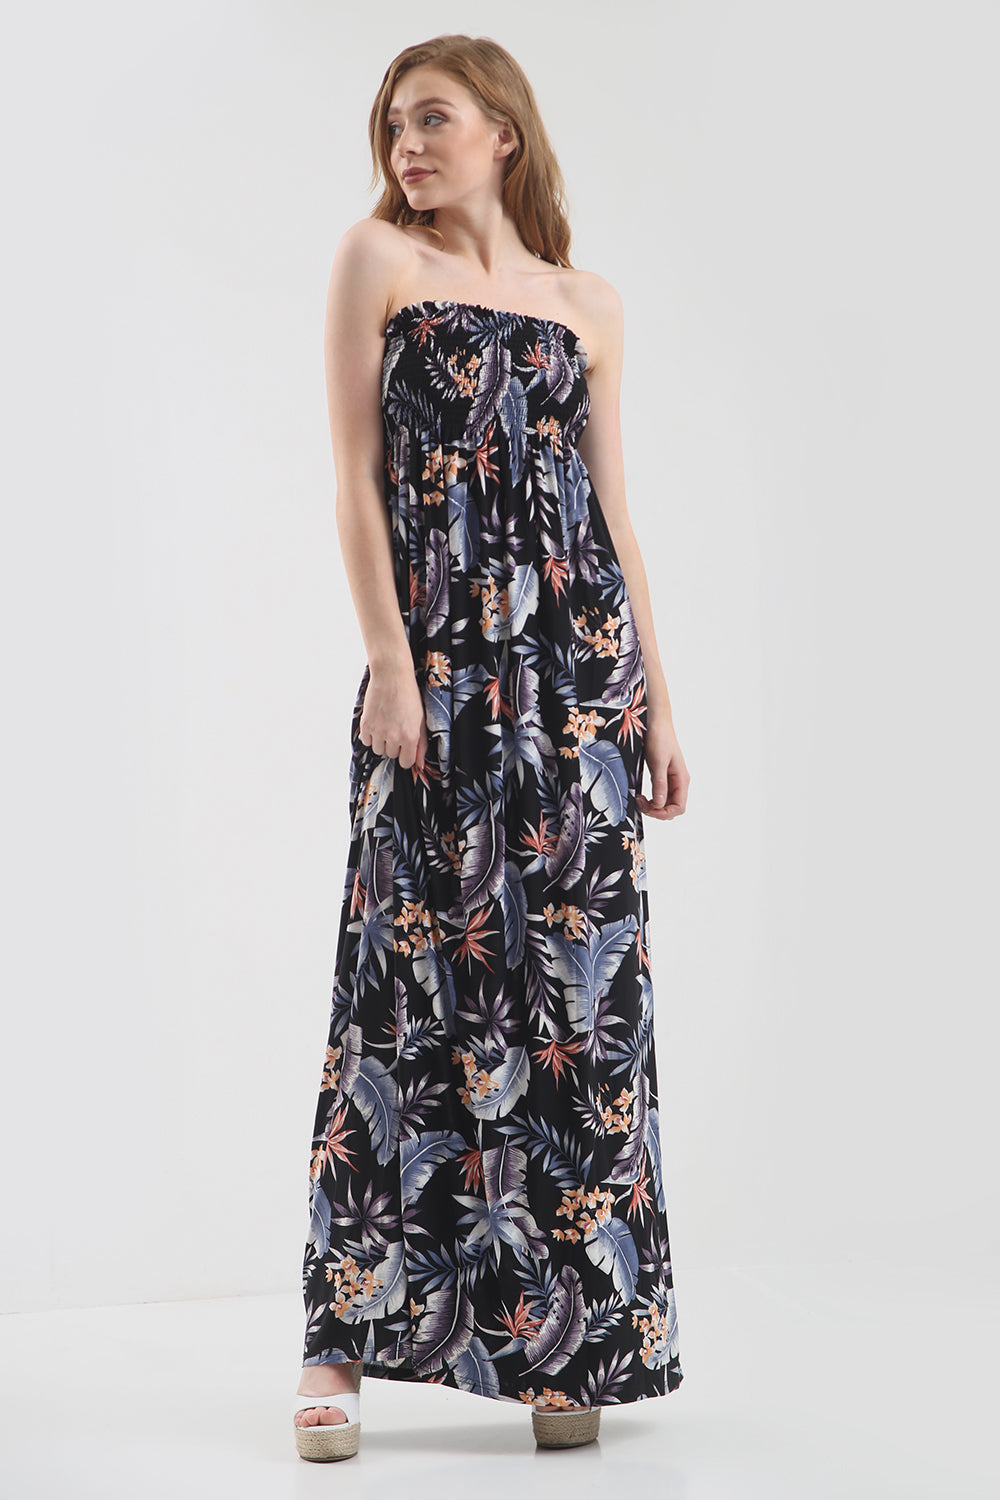 Tropical Print Bardot Black Maxi Dress - bejealous-com